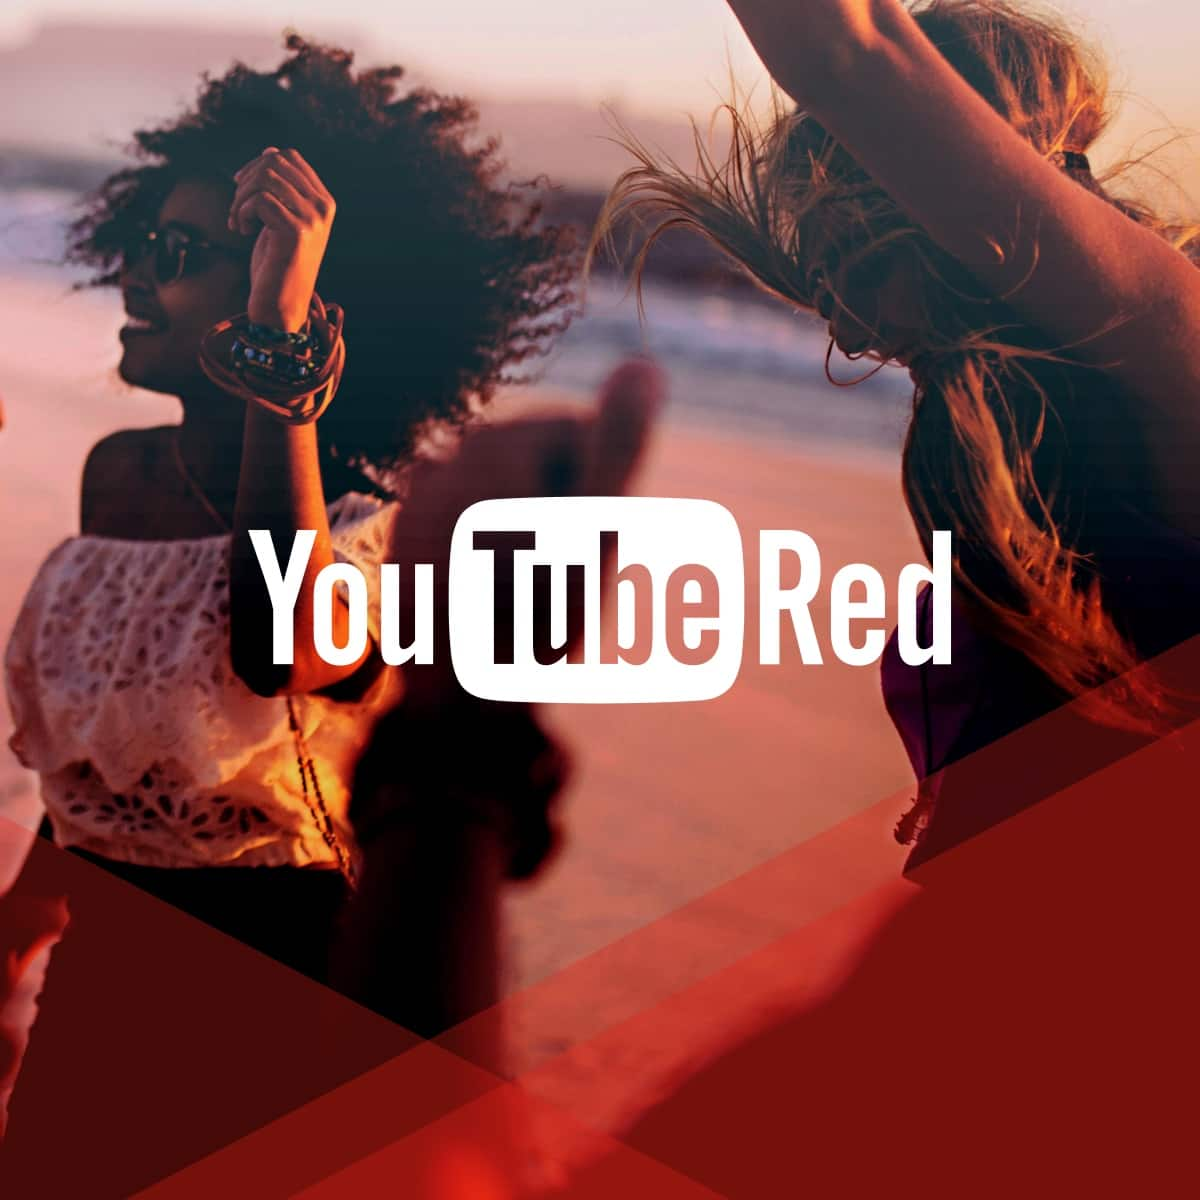 YouTube Red and Google Play Music account FREE 3 month trial for new  subscribers. Expires